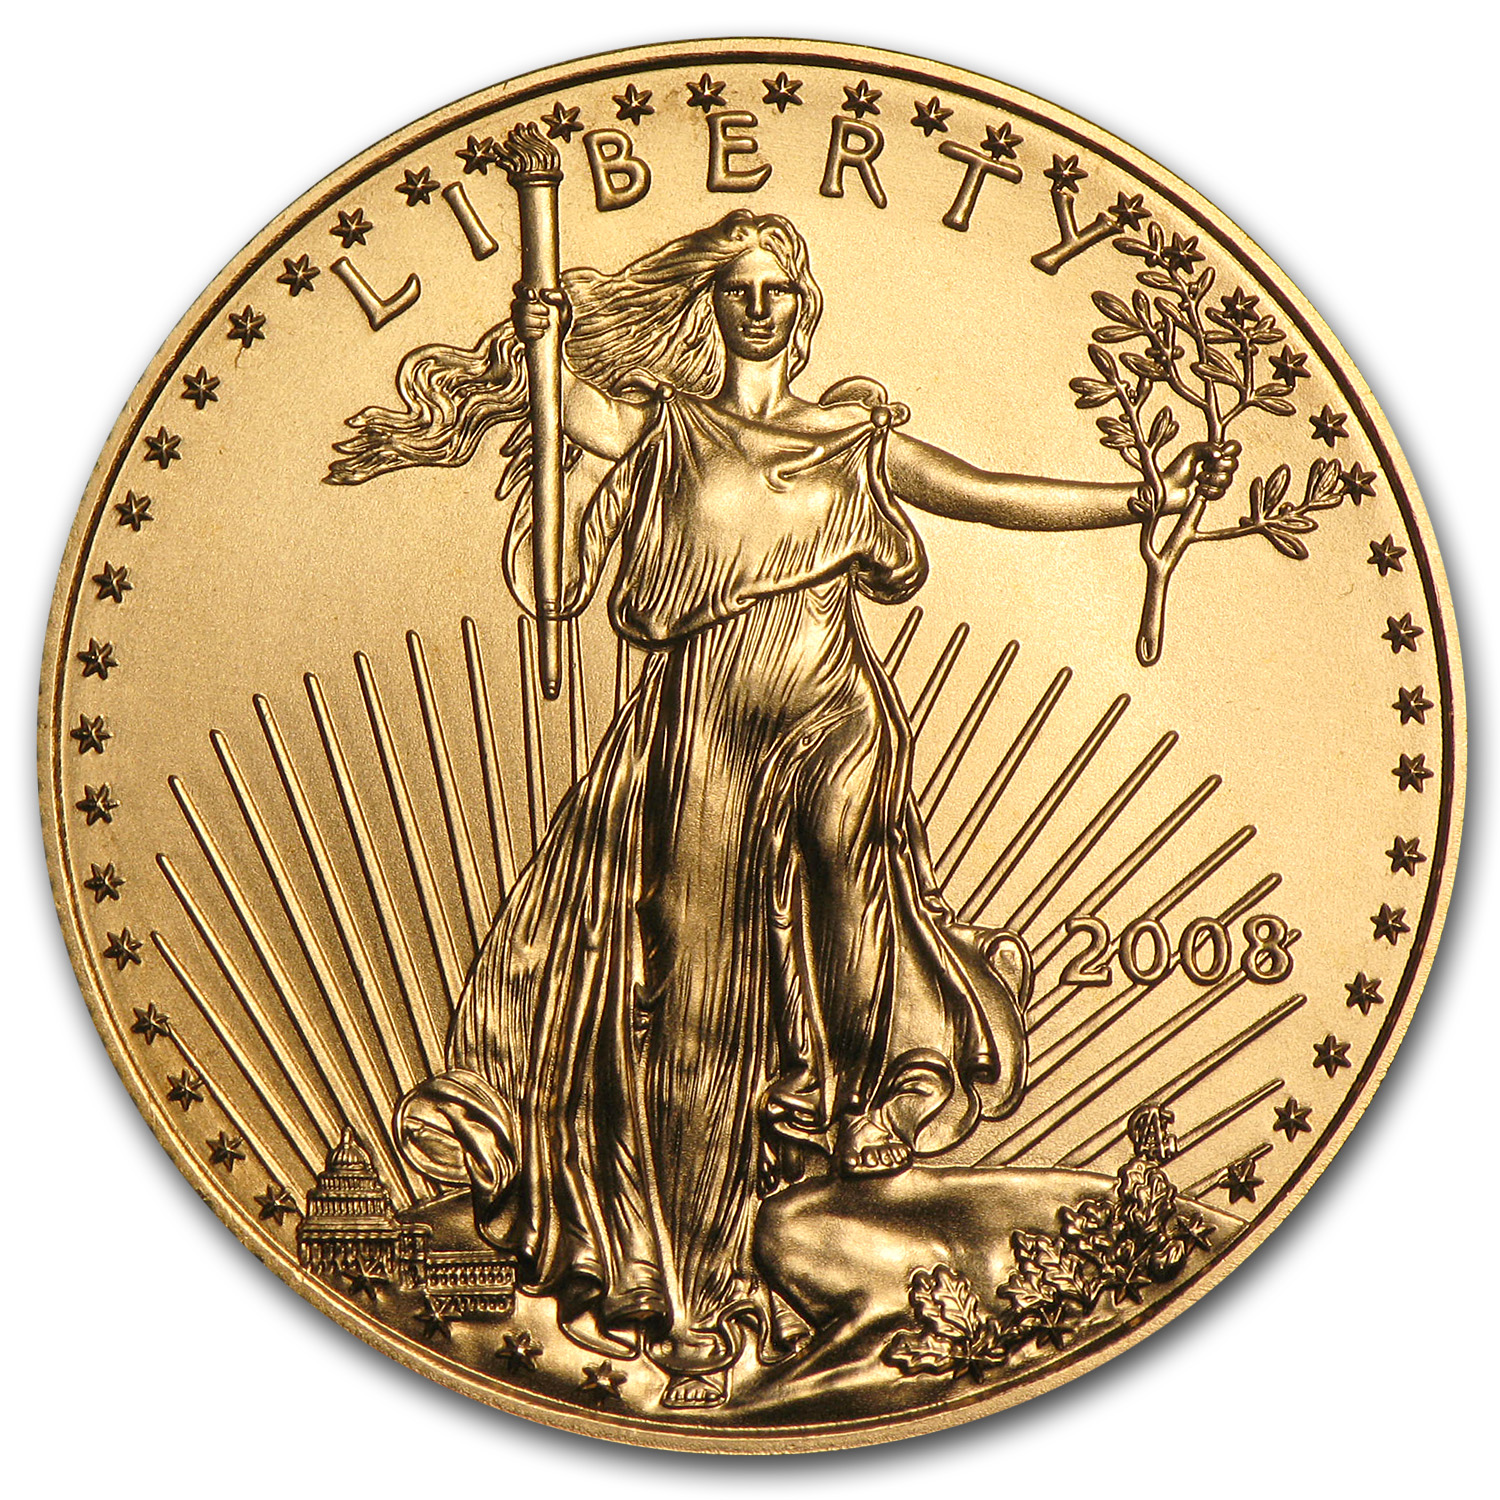 2008 1/2 oz Gold American Eagle (BU)